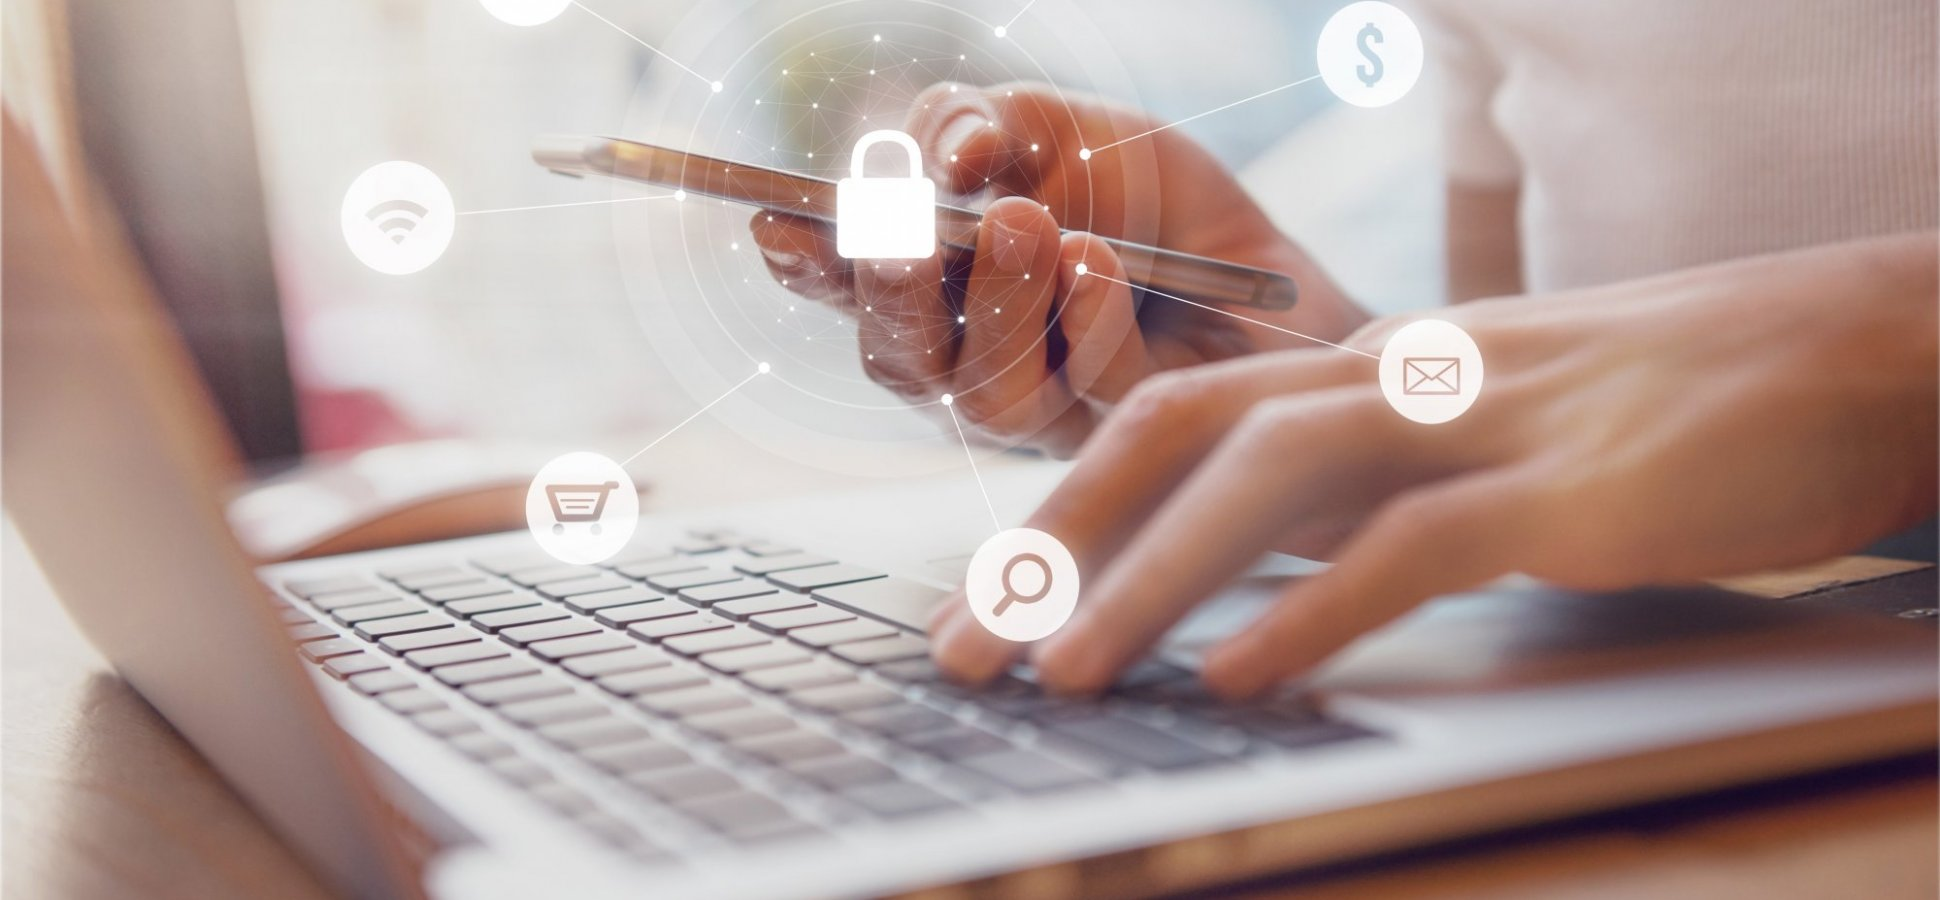 Behavioral Biometrics Are Key for Cybersecurity